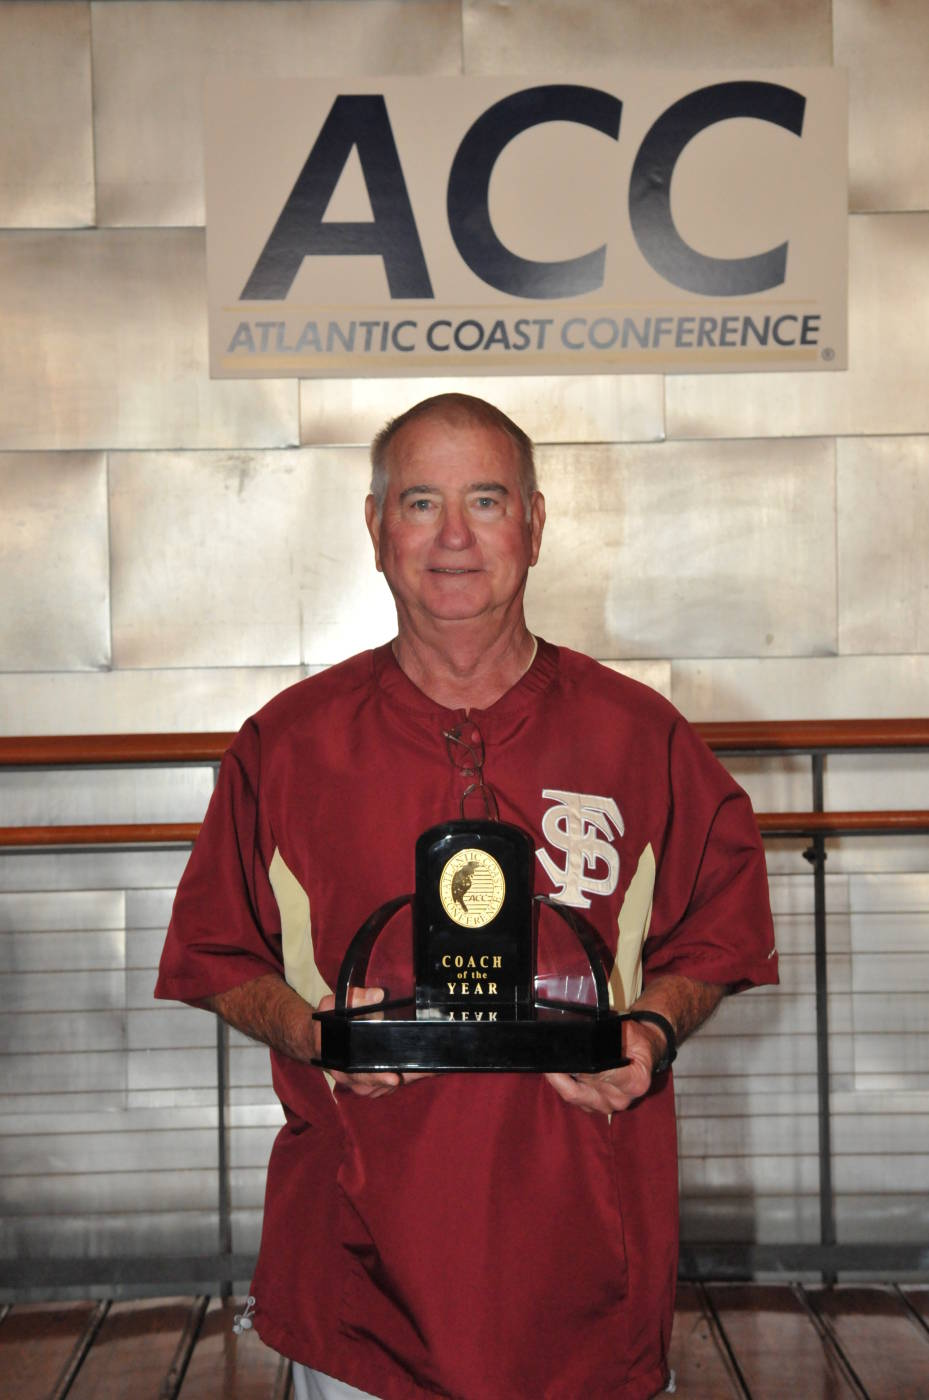 Head coach Mike Martin received ACC Coach of the Year honors